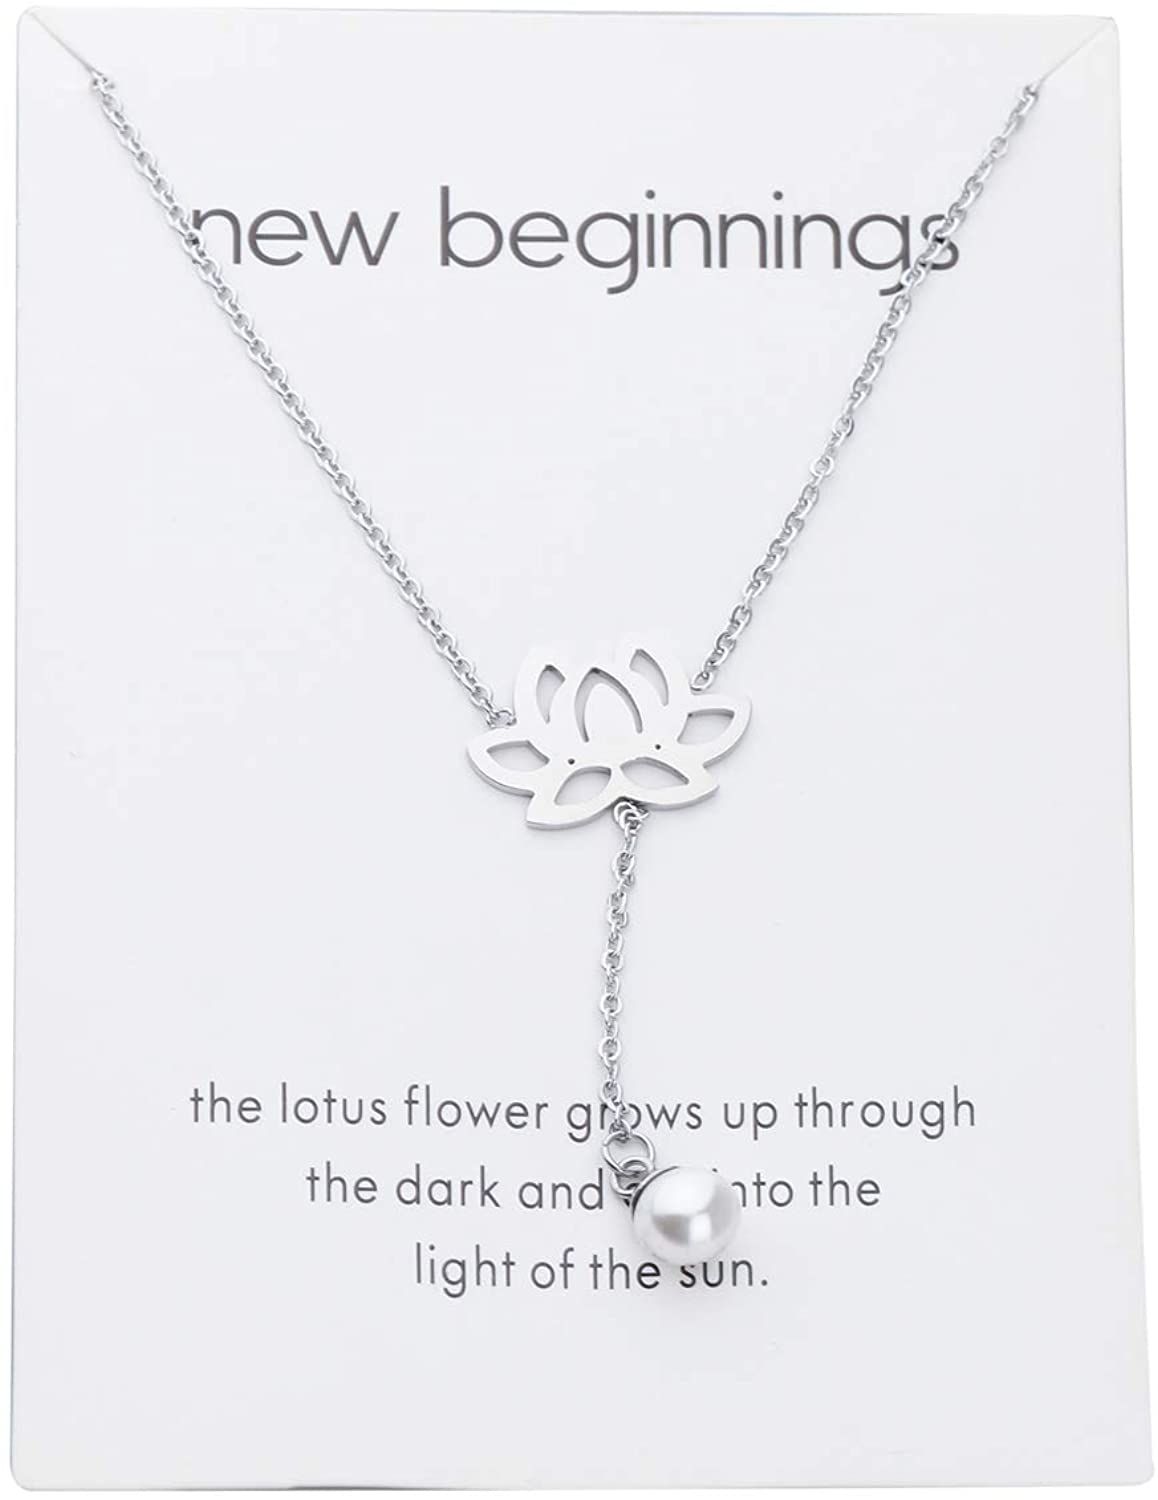 POTIY New Beginnings Rising Lotus Pendant Necklace Sun Y Necklace Lucky Lotus and Pearl Pendant Necklace Inspirational Gift for Womem with Meaning Card